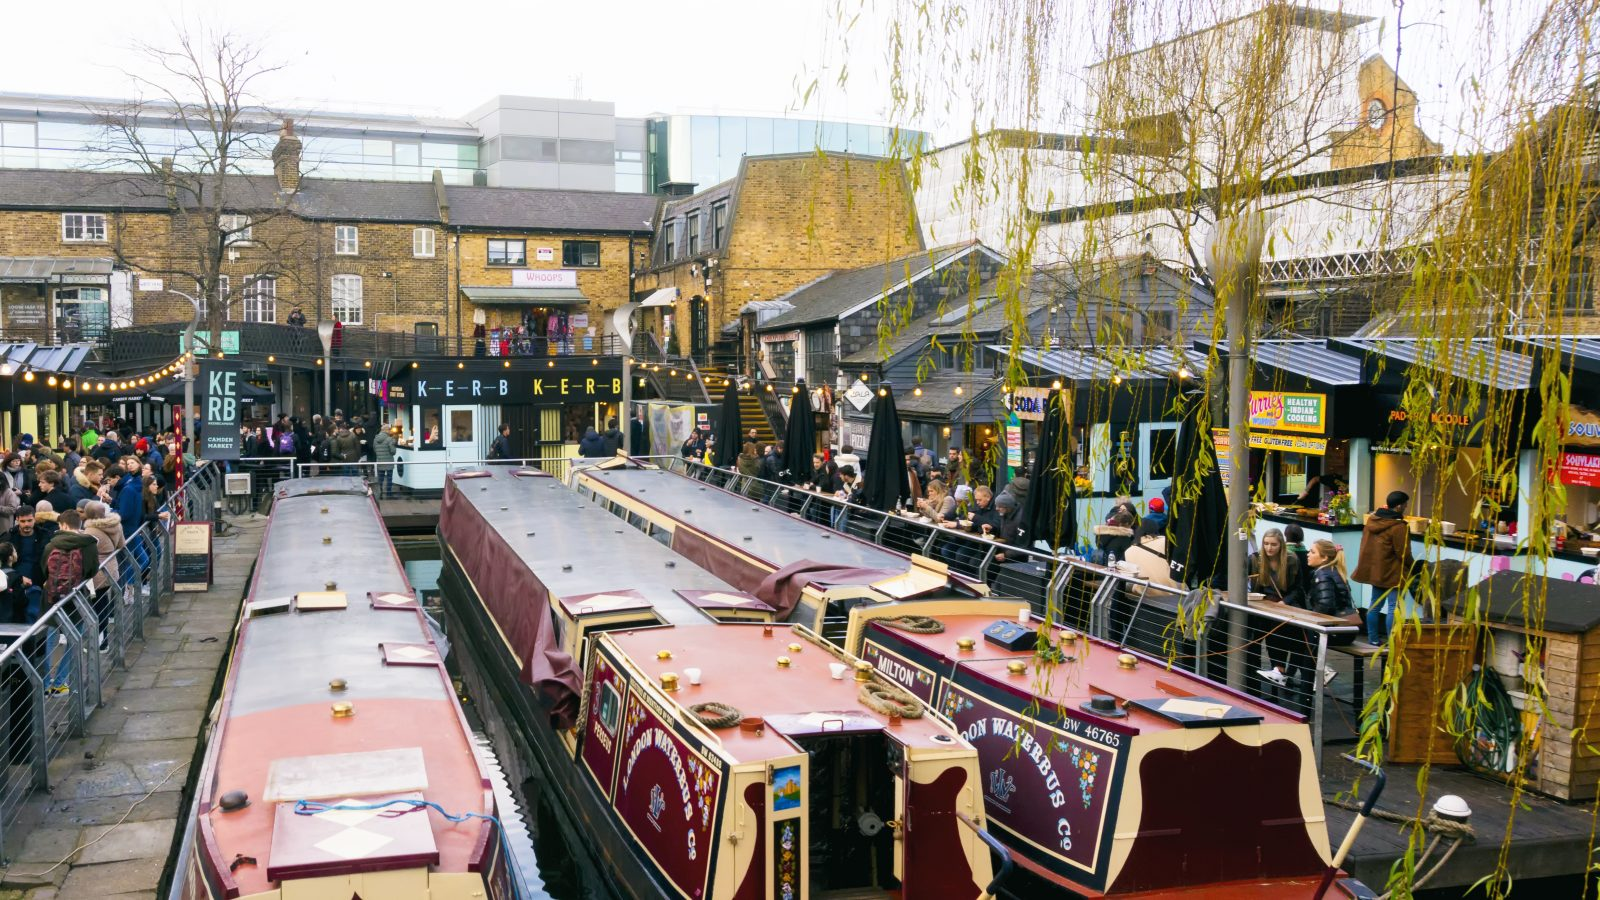 Kerb camden market kerb the best of london street food for The camden